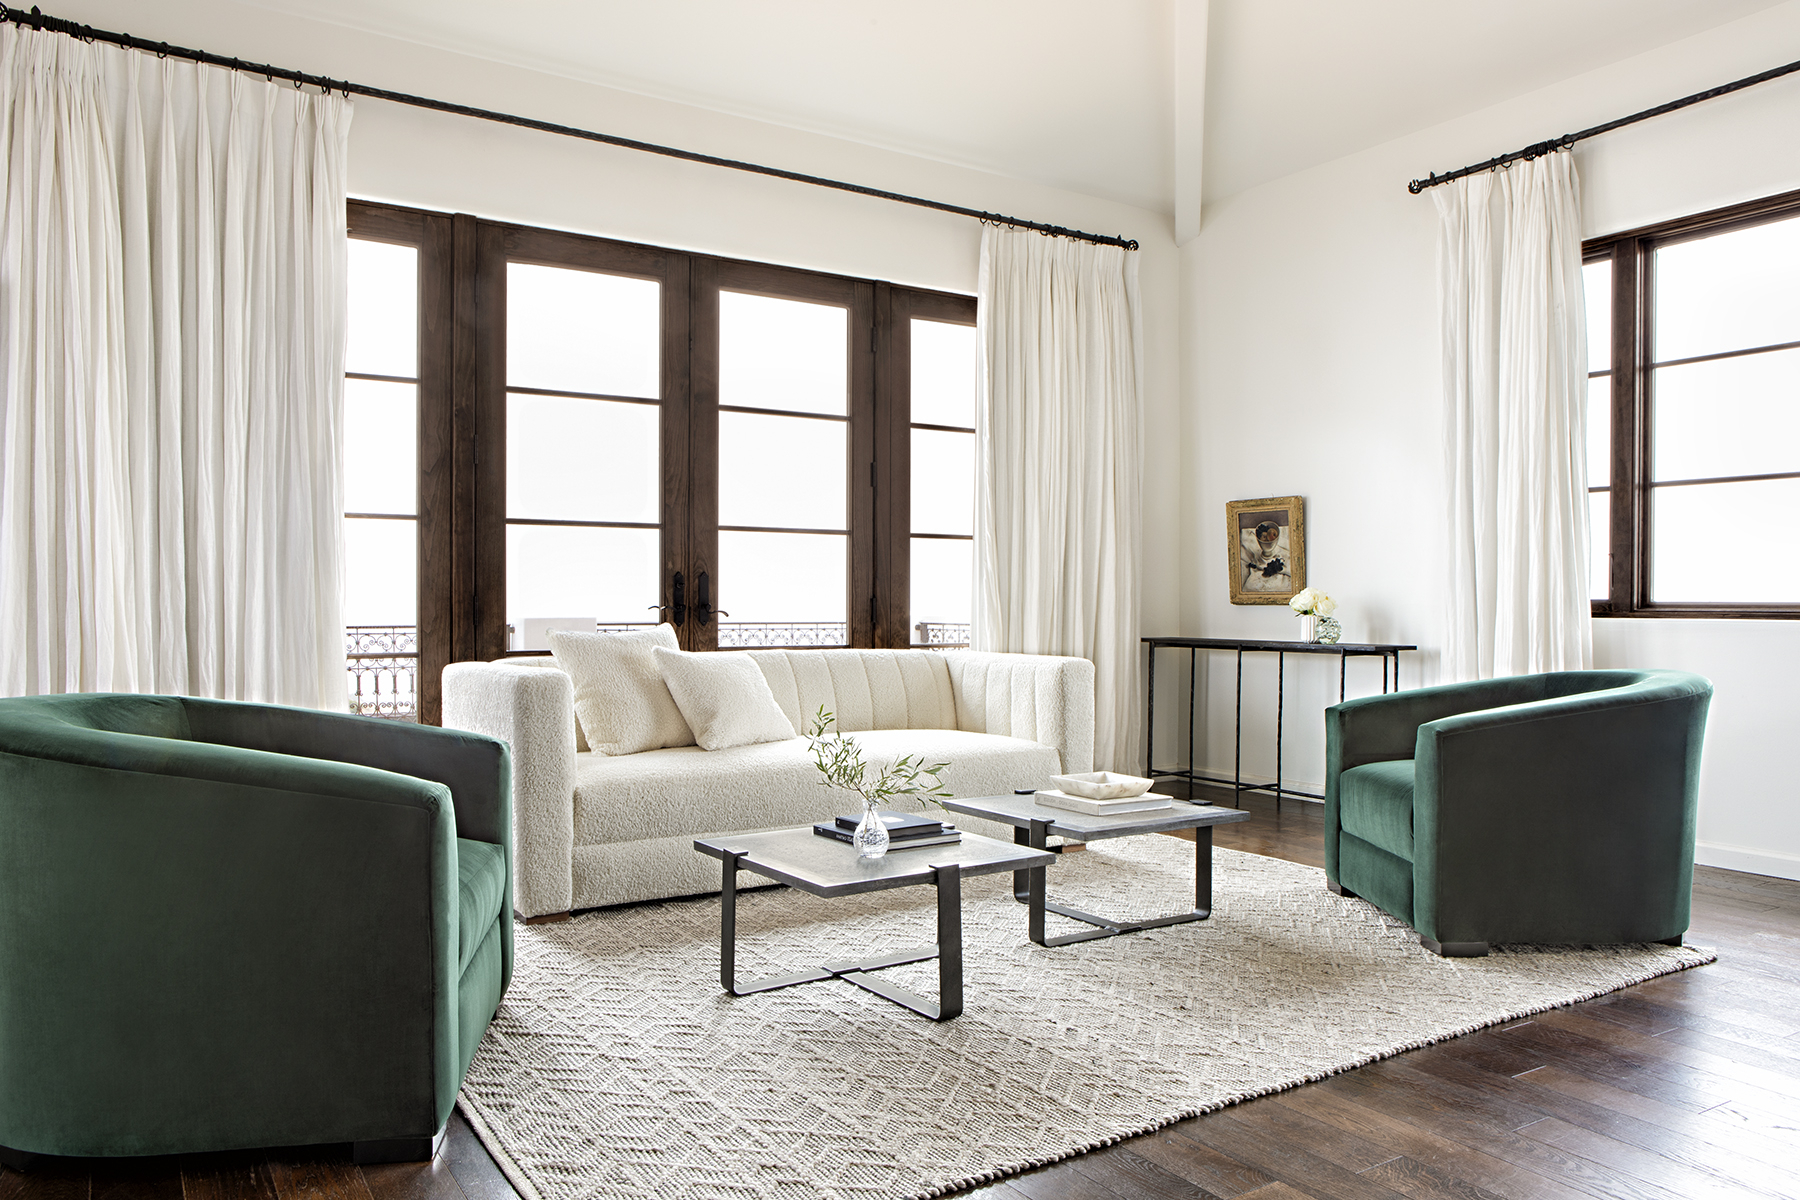 Nate Berkus & Jeremiah Brent's Newest Affordable Collection (Gallery 7 of 20)